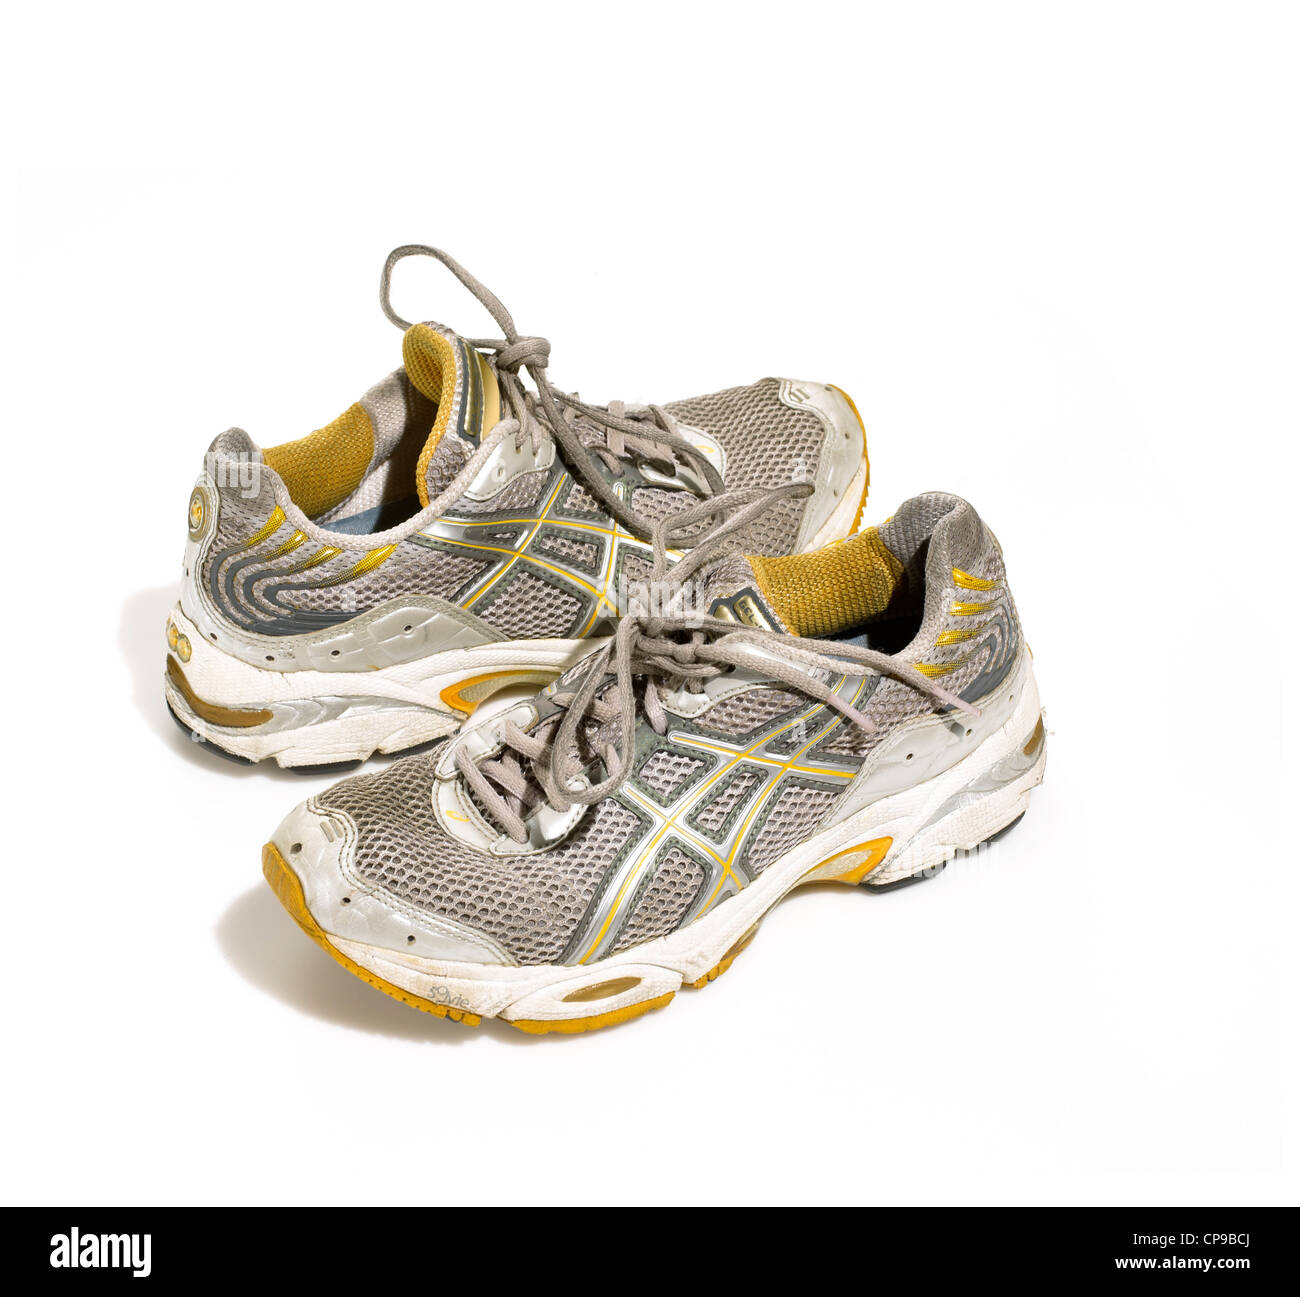 Worn-in Athletic Running Sneakers - Stock Image